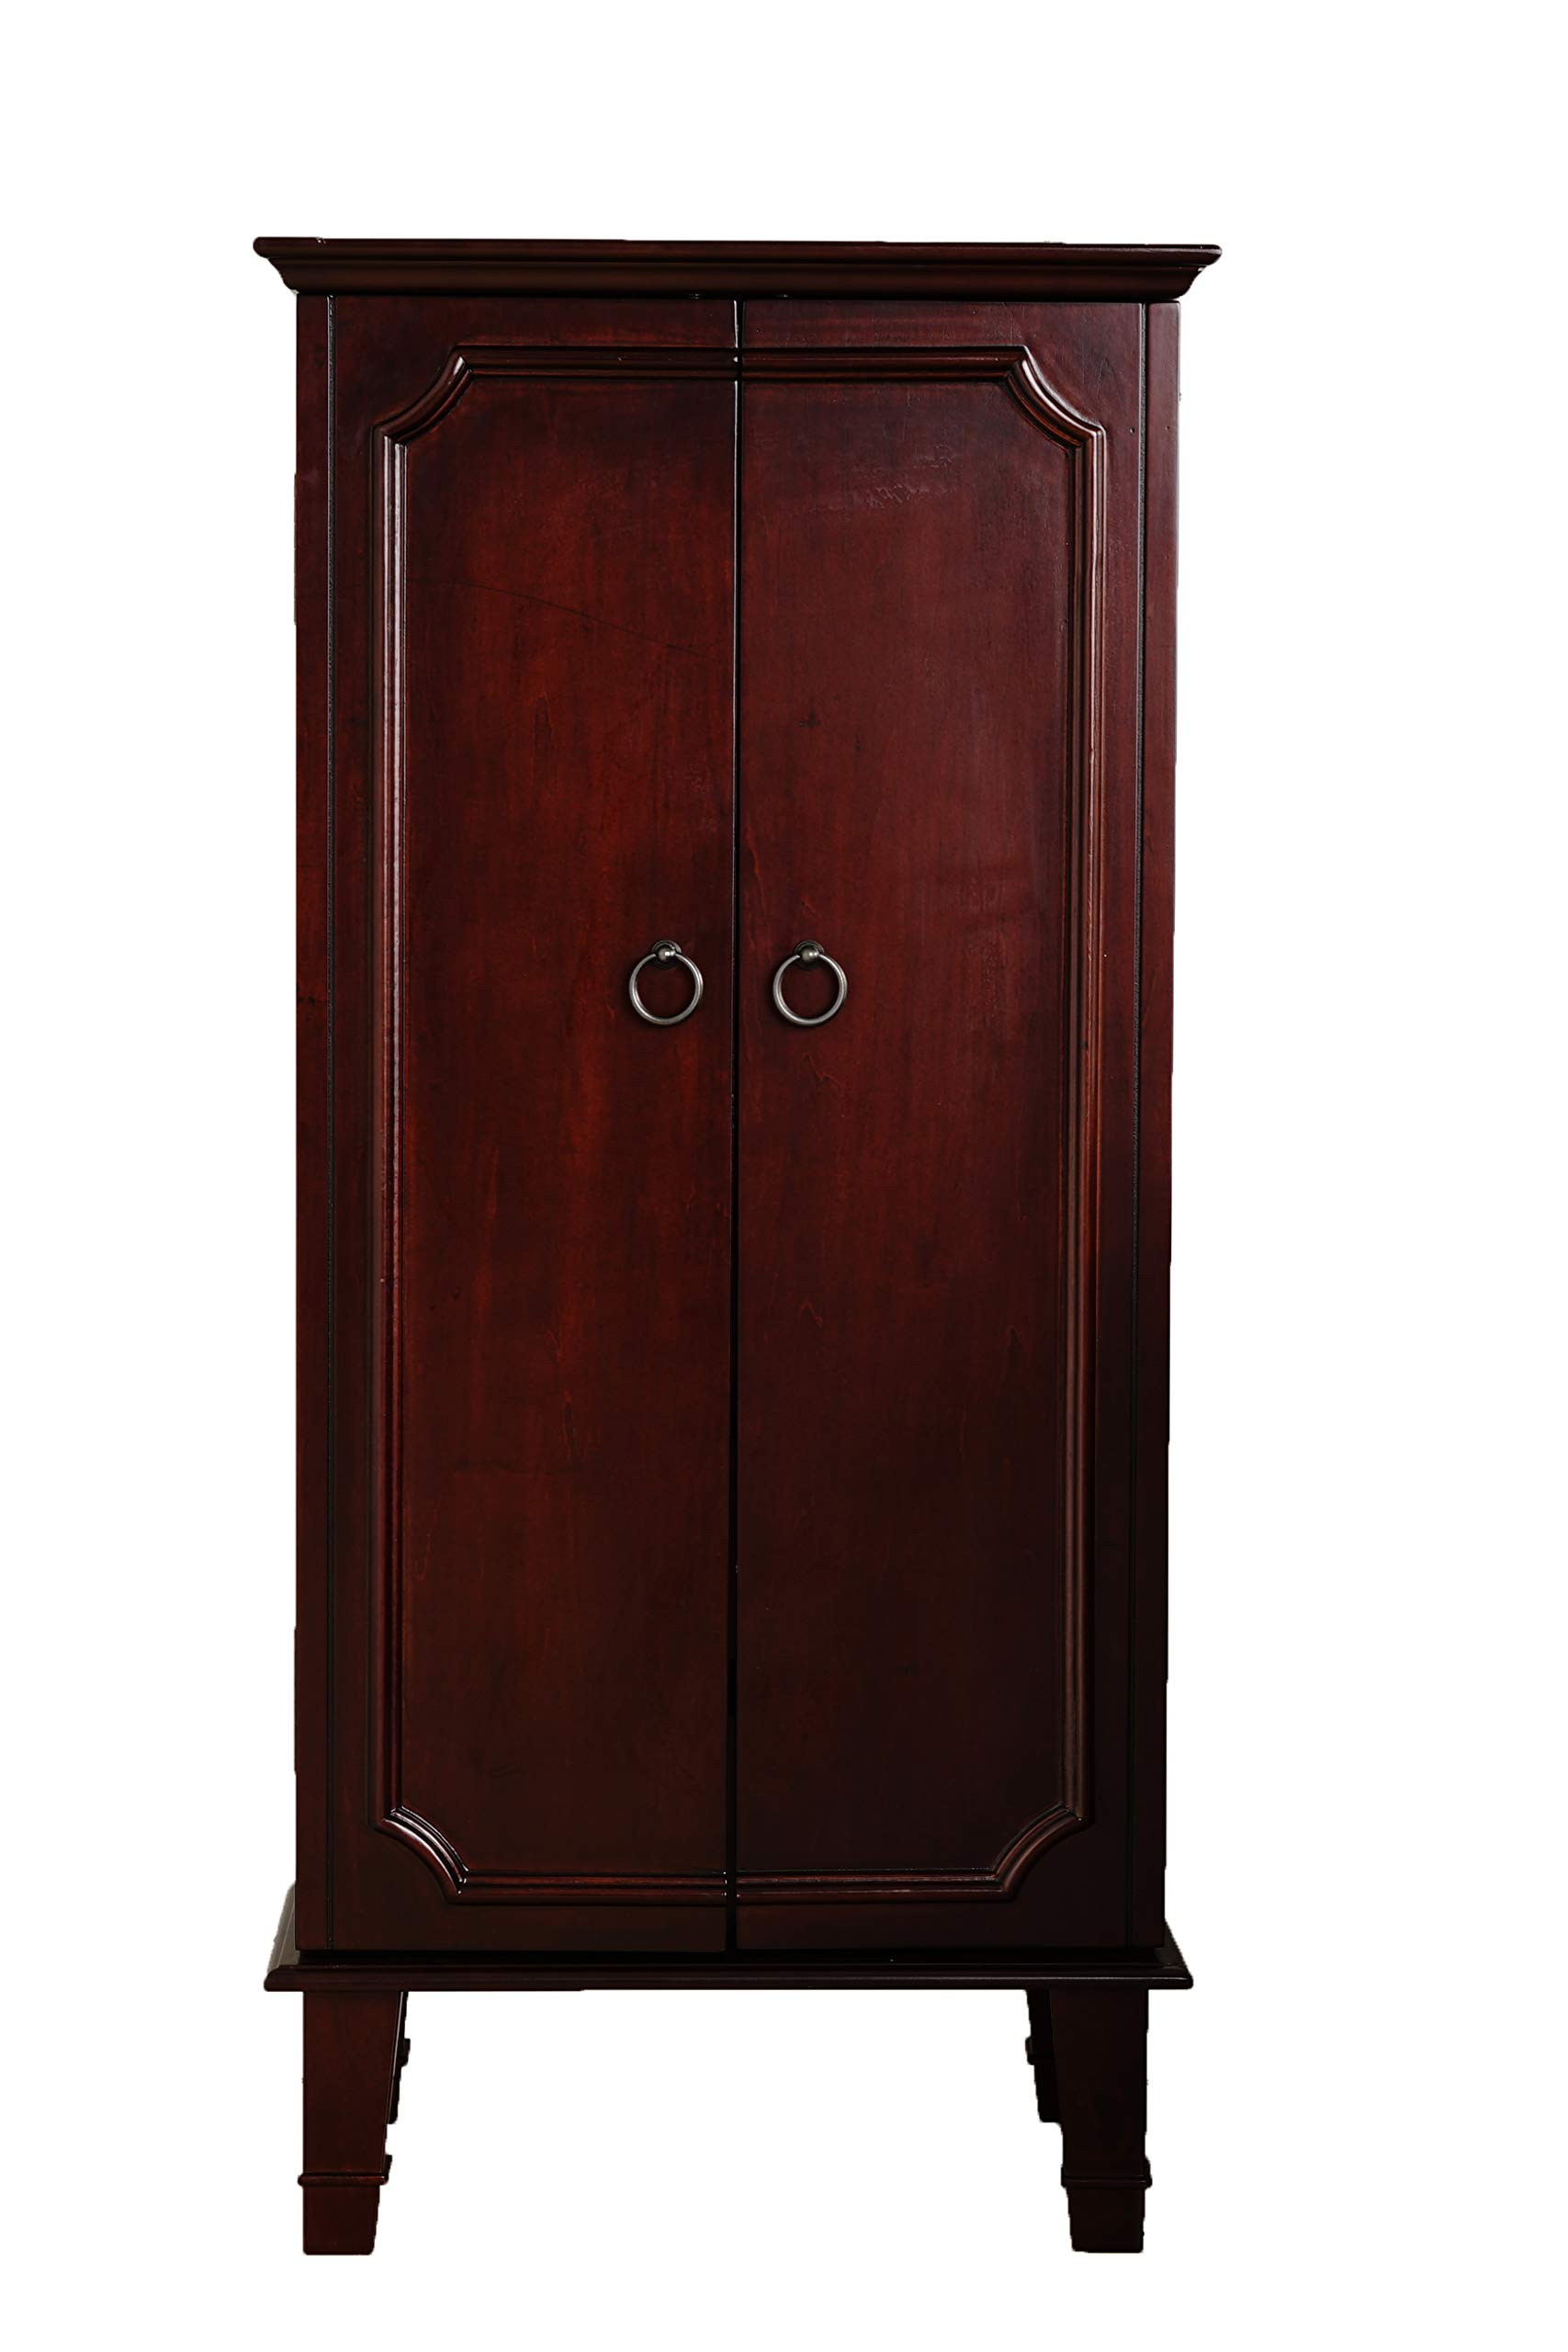 Hives and Honey Cabby Fully Locking Jewelry Cabinet, Cherry